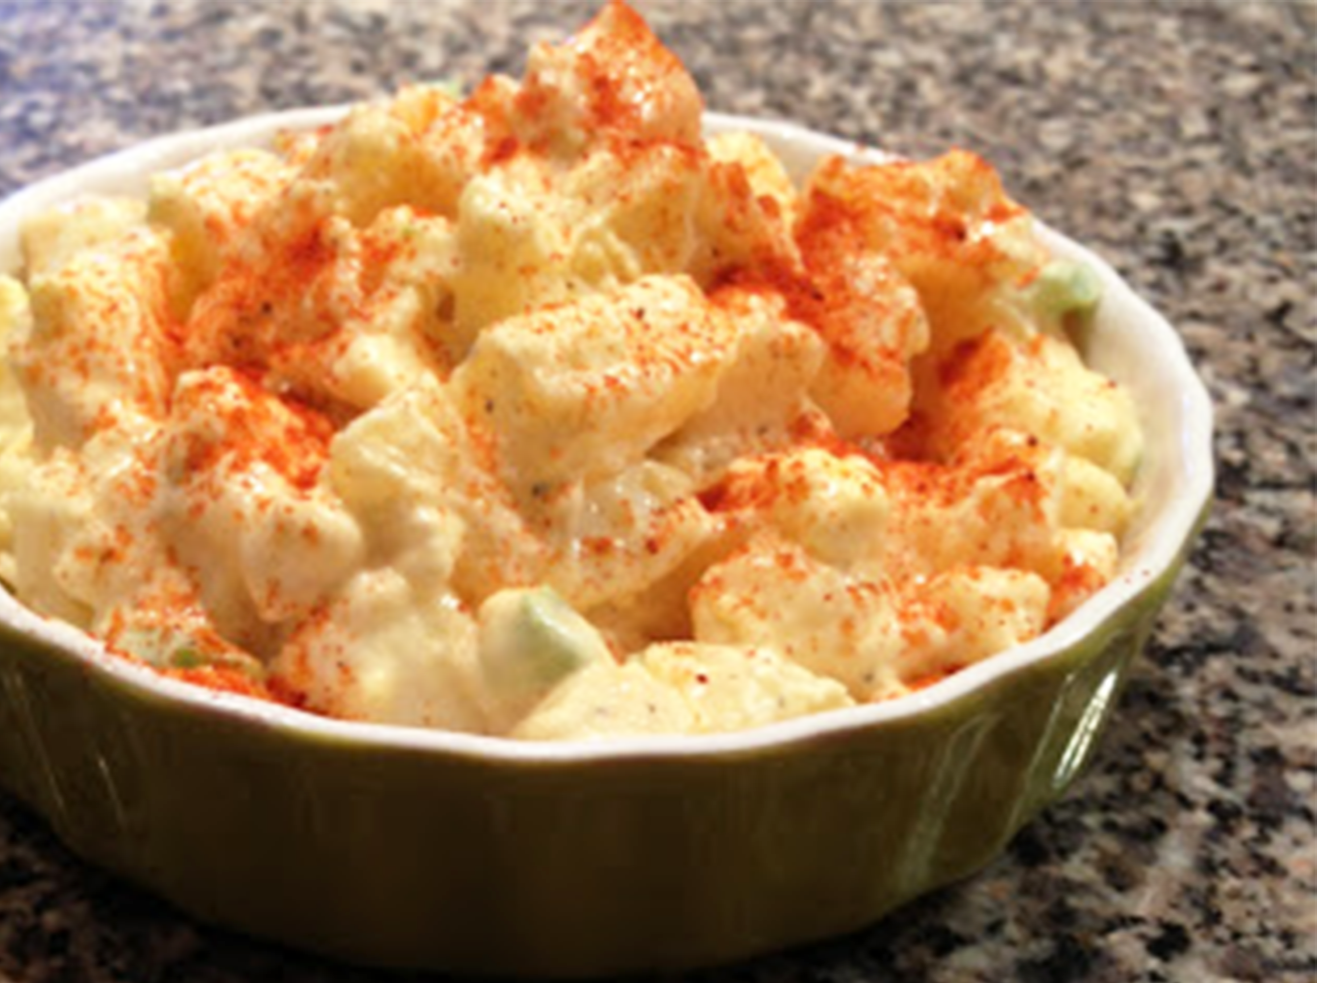 Parties and Patterns: Awesome Potato Salad